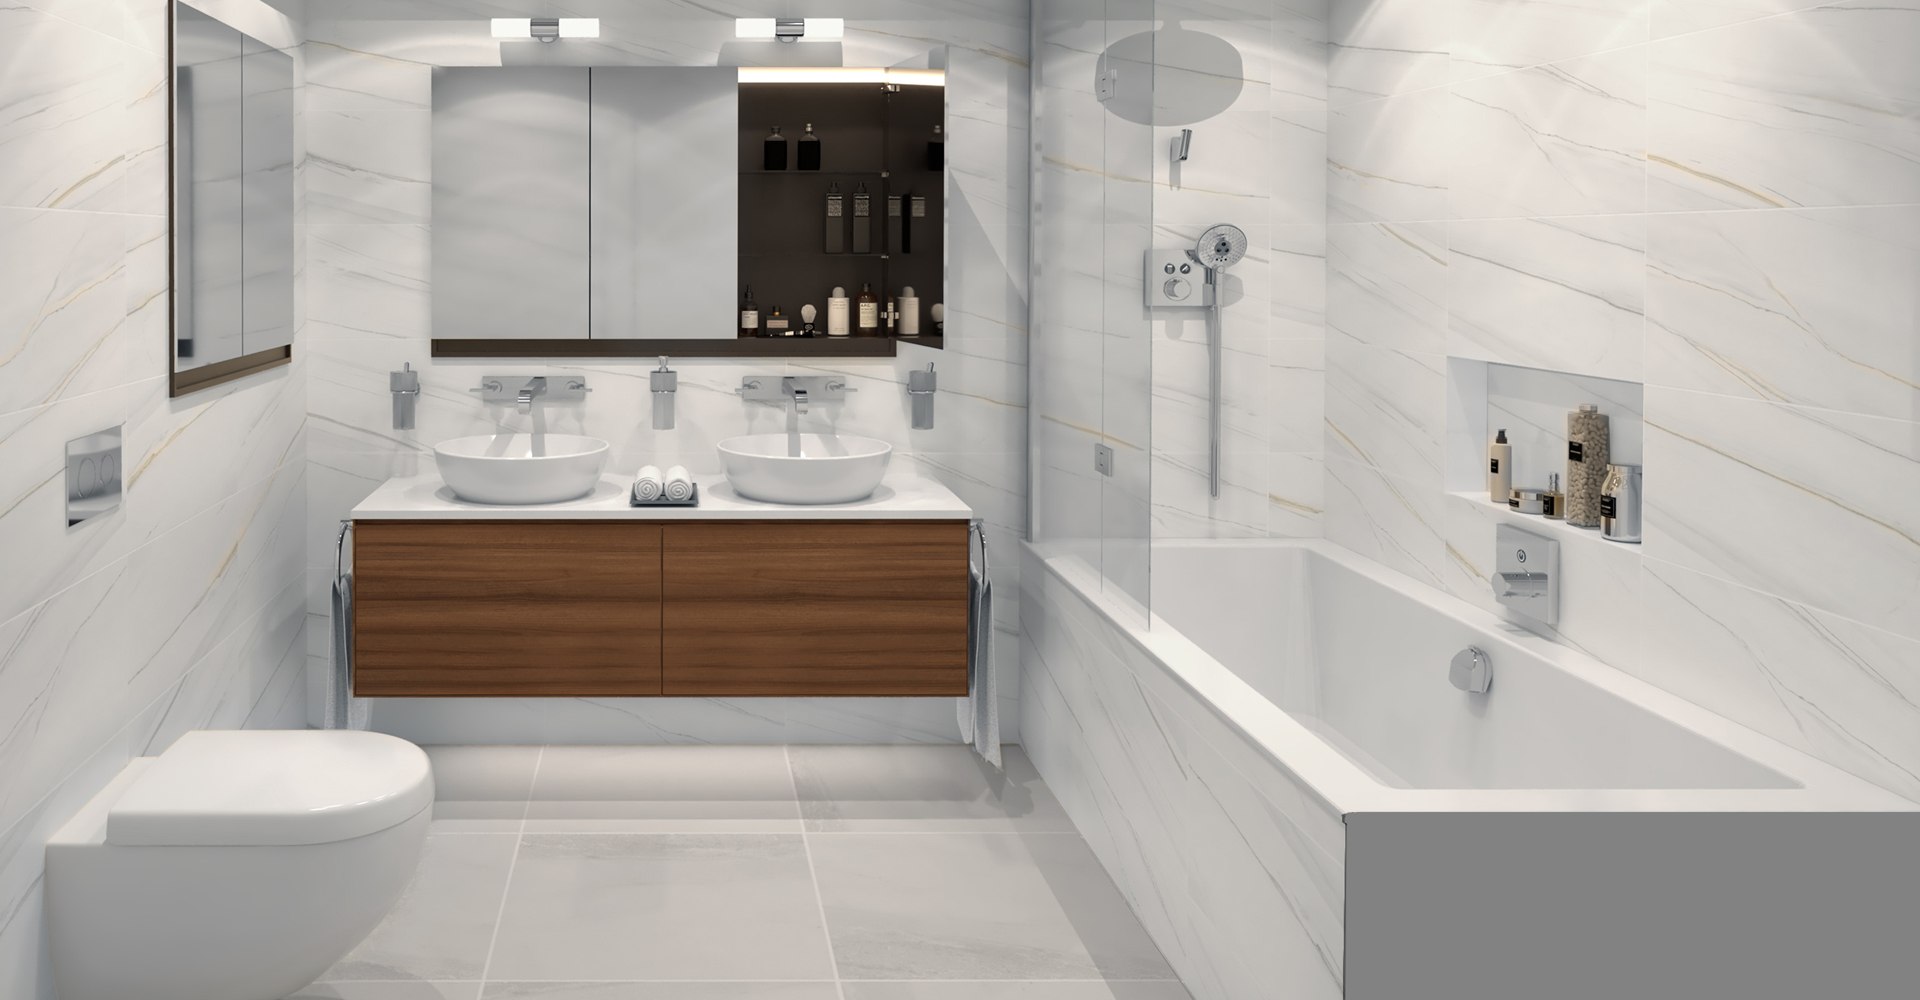 Rendering of a marble bathroom